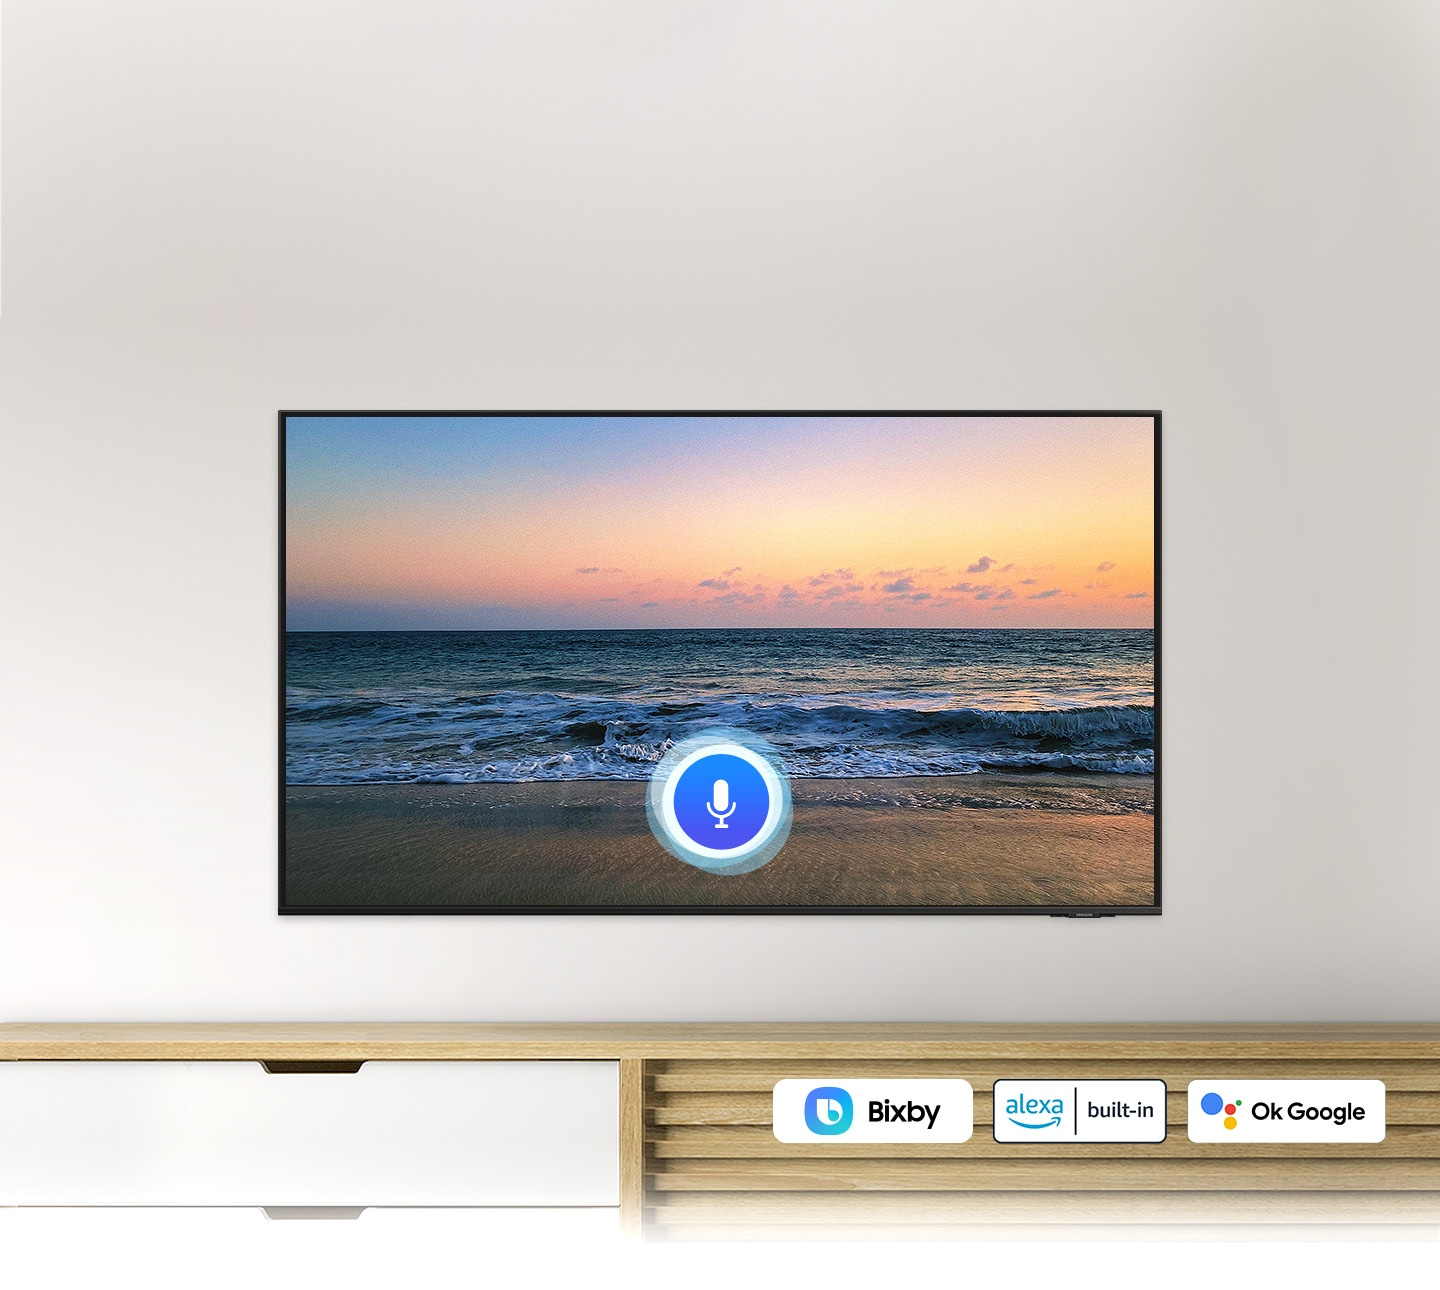 A microphone icon overlays a beach sunset TV screen image, demonstrating UHD TV voice assistant feature.